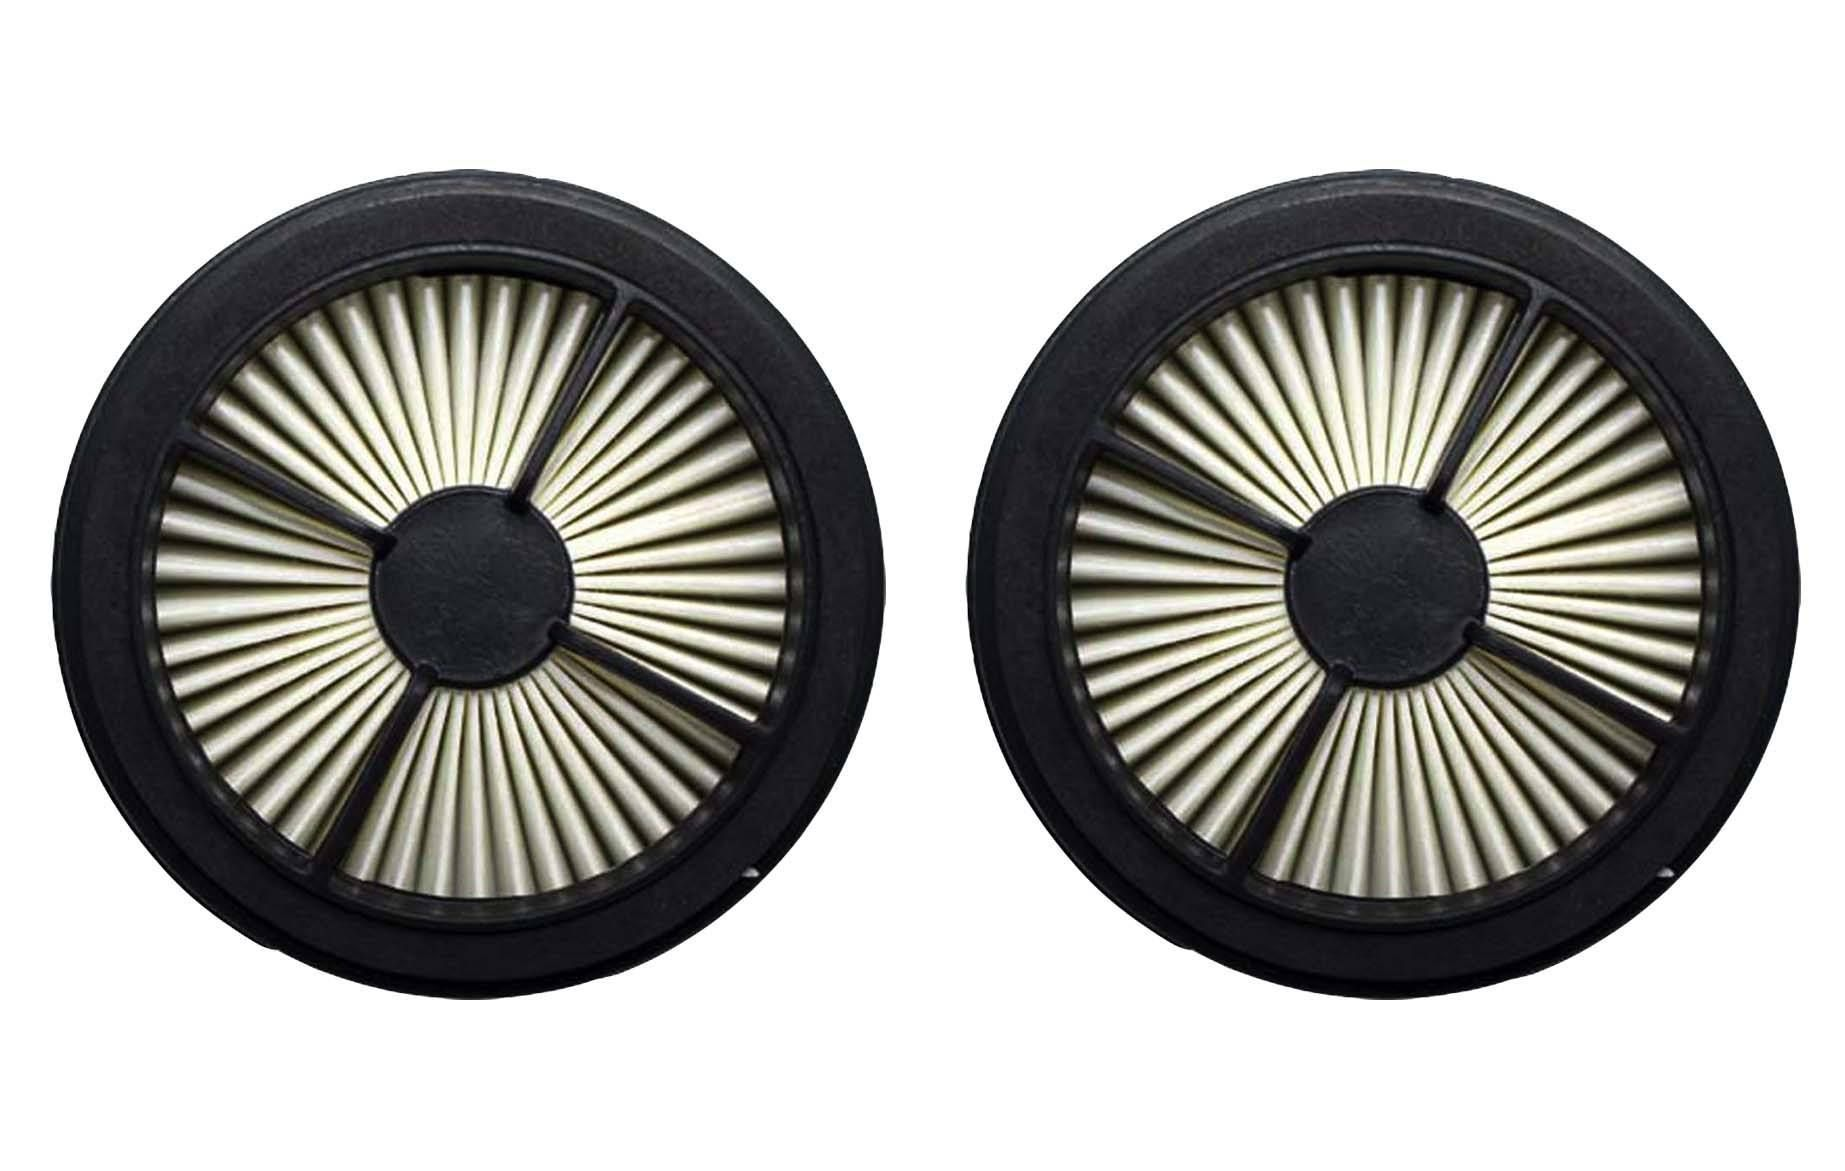 2 Replacement Filter & Foam Cartridge Kits for Select Dirt Devil Vacuums, Size F44